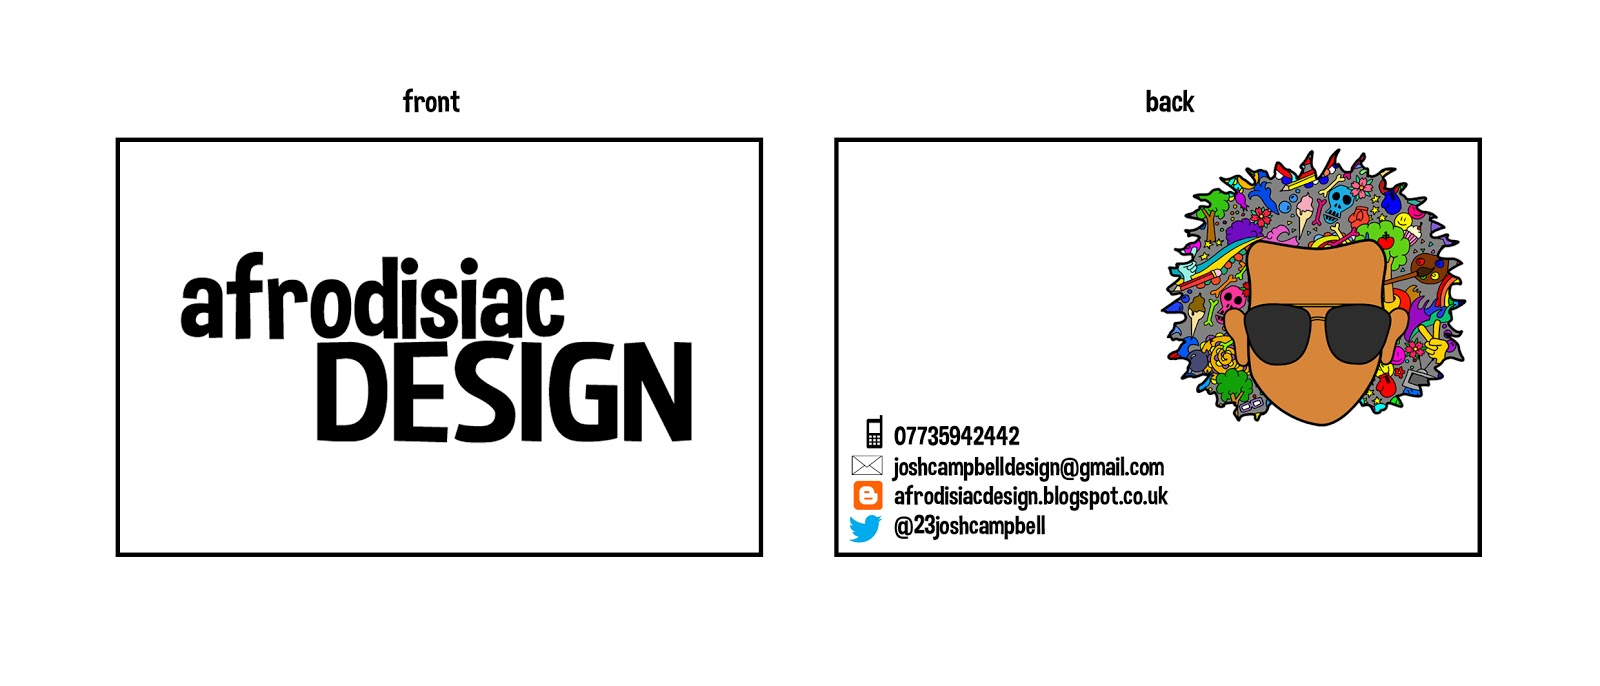 Business cards and t shirts afrodisiacdesign this was the design for my business card although i made some last minute developments before printing and through feedback after handing them out i will colourmoves